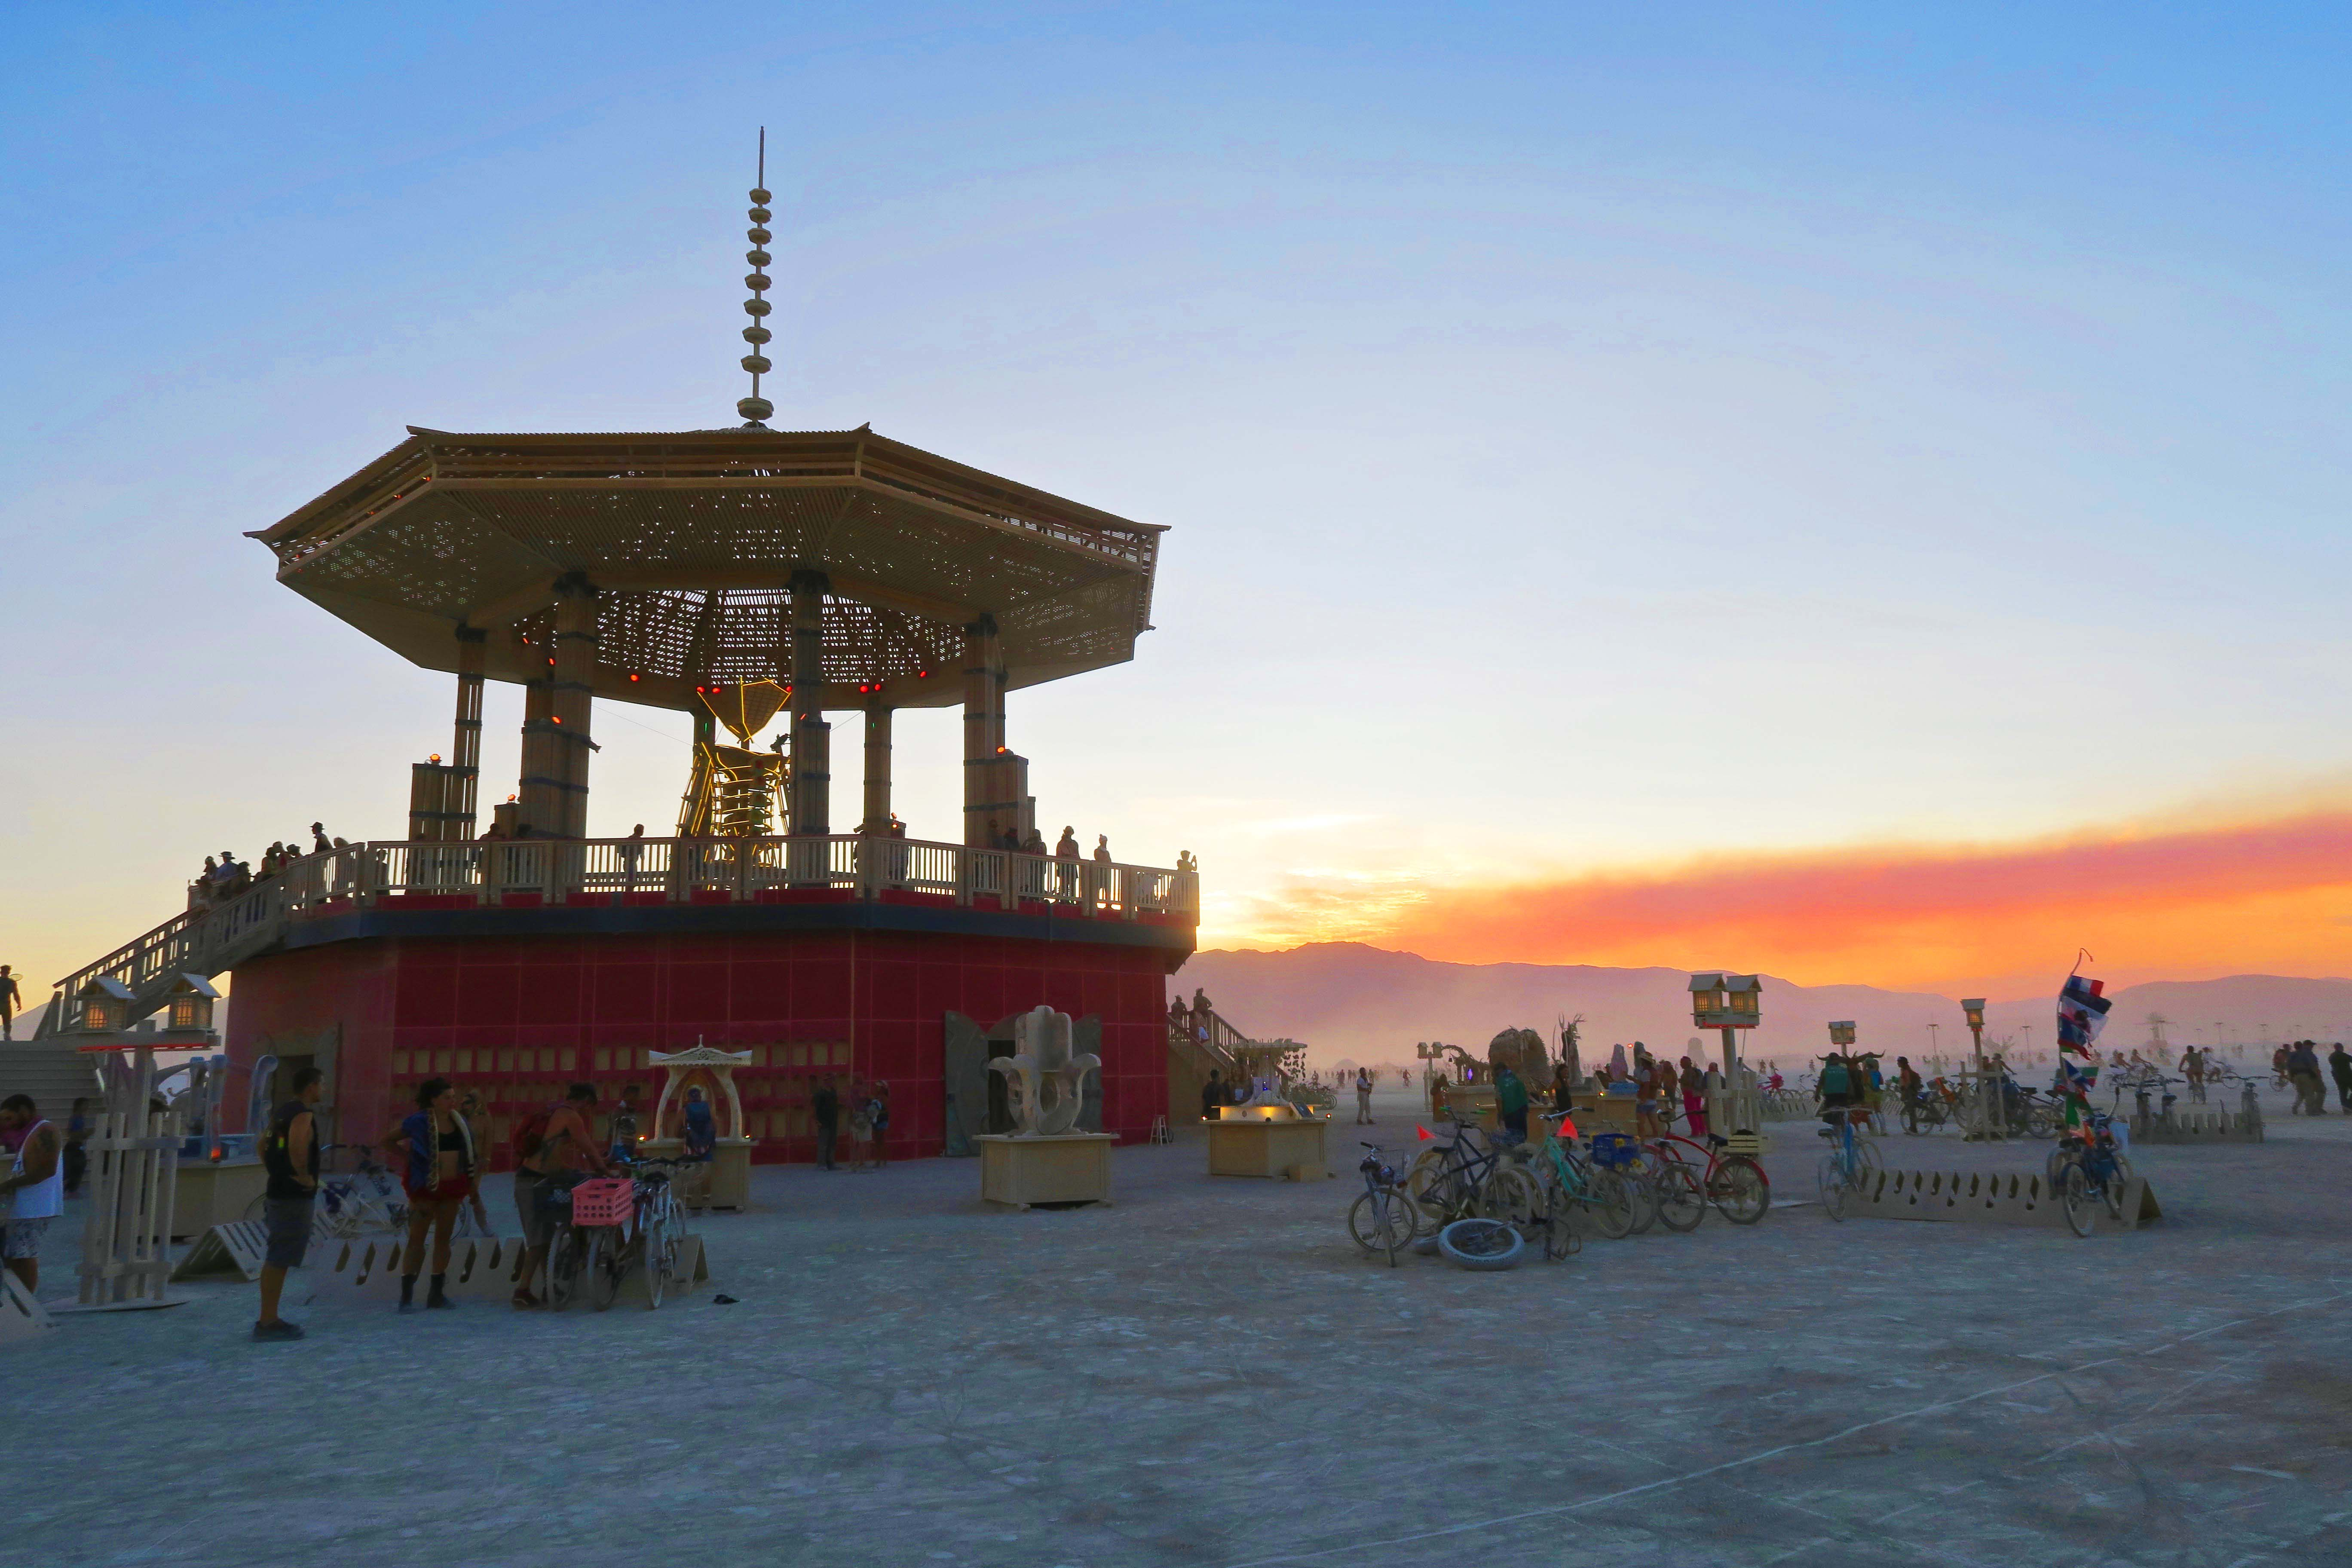 Evening view of Temple of Golden Spike, Burning Man 2017